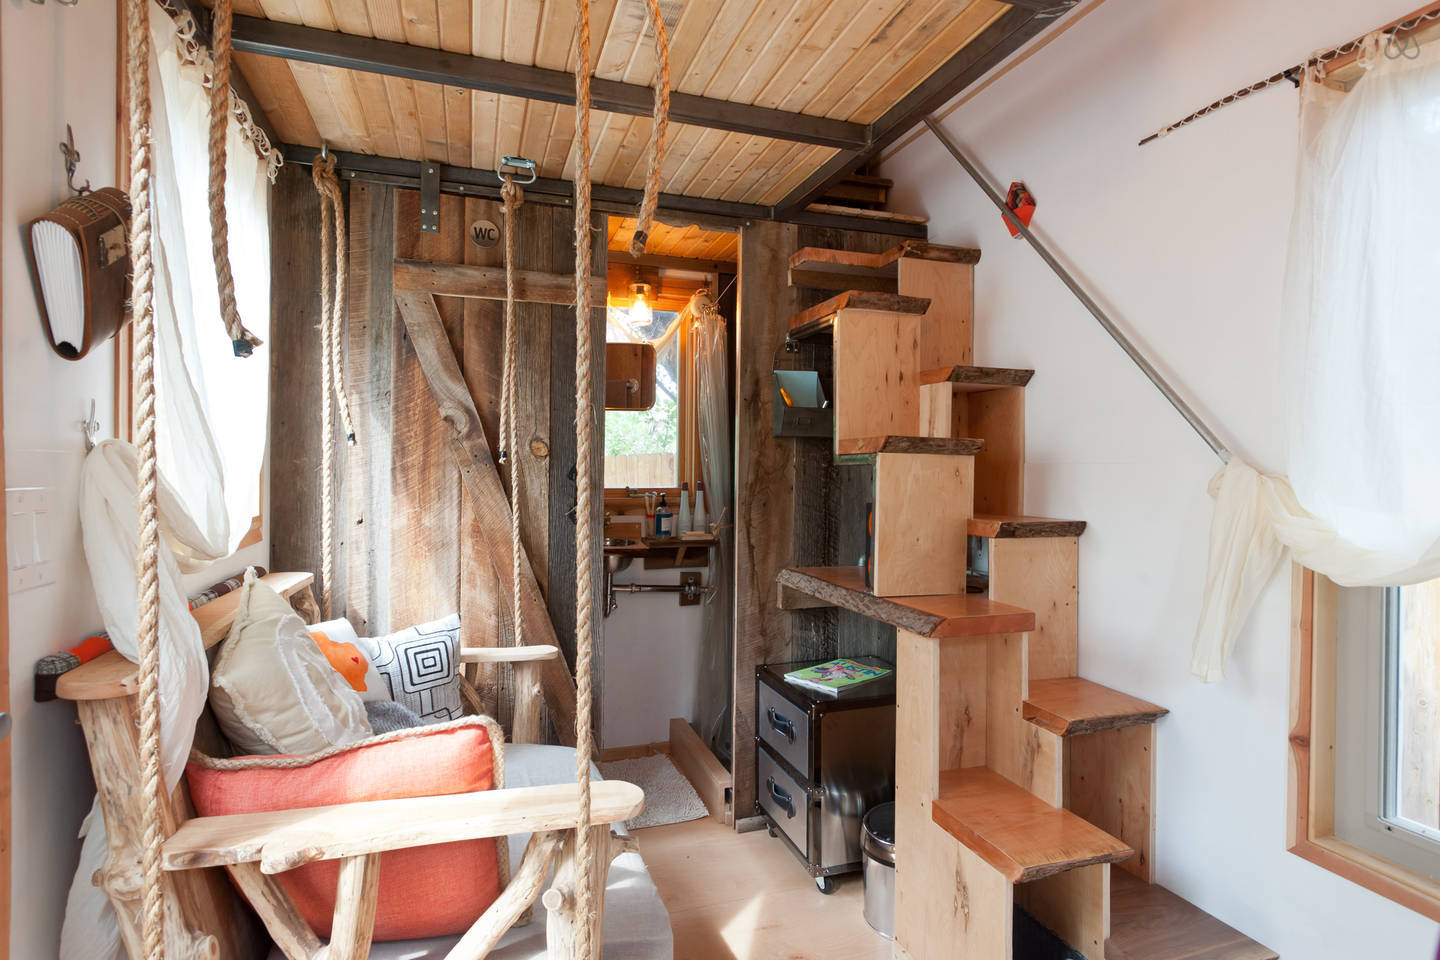 16 tiny houses you wish you could live in images via tiny house living hip east side tiny pad interior